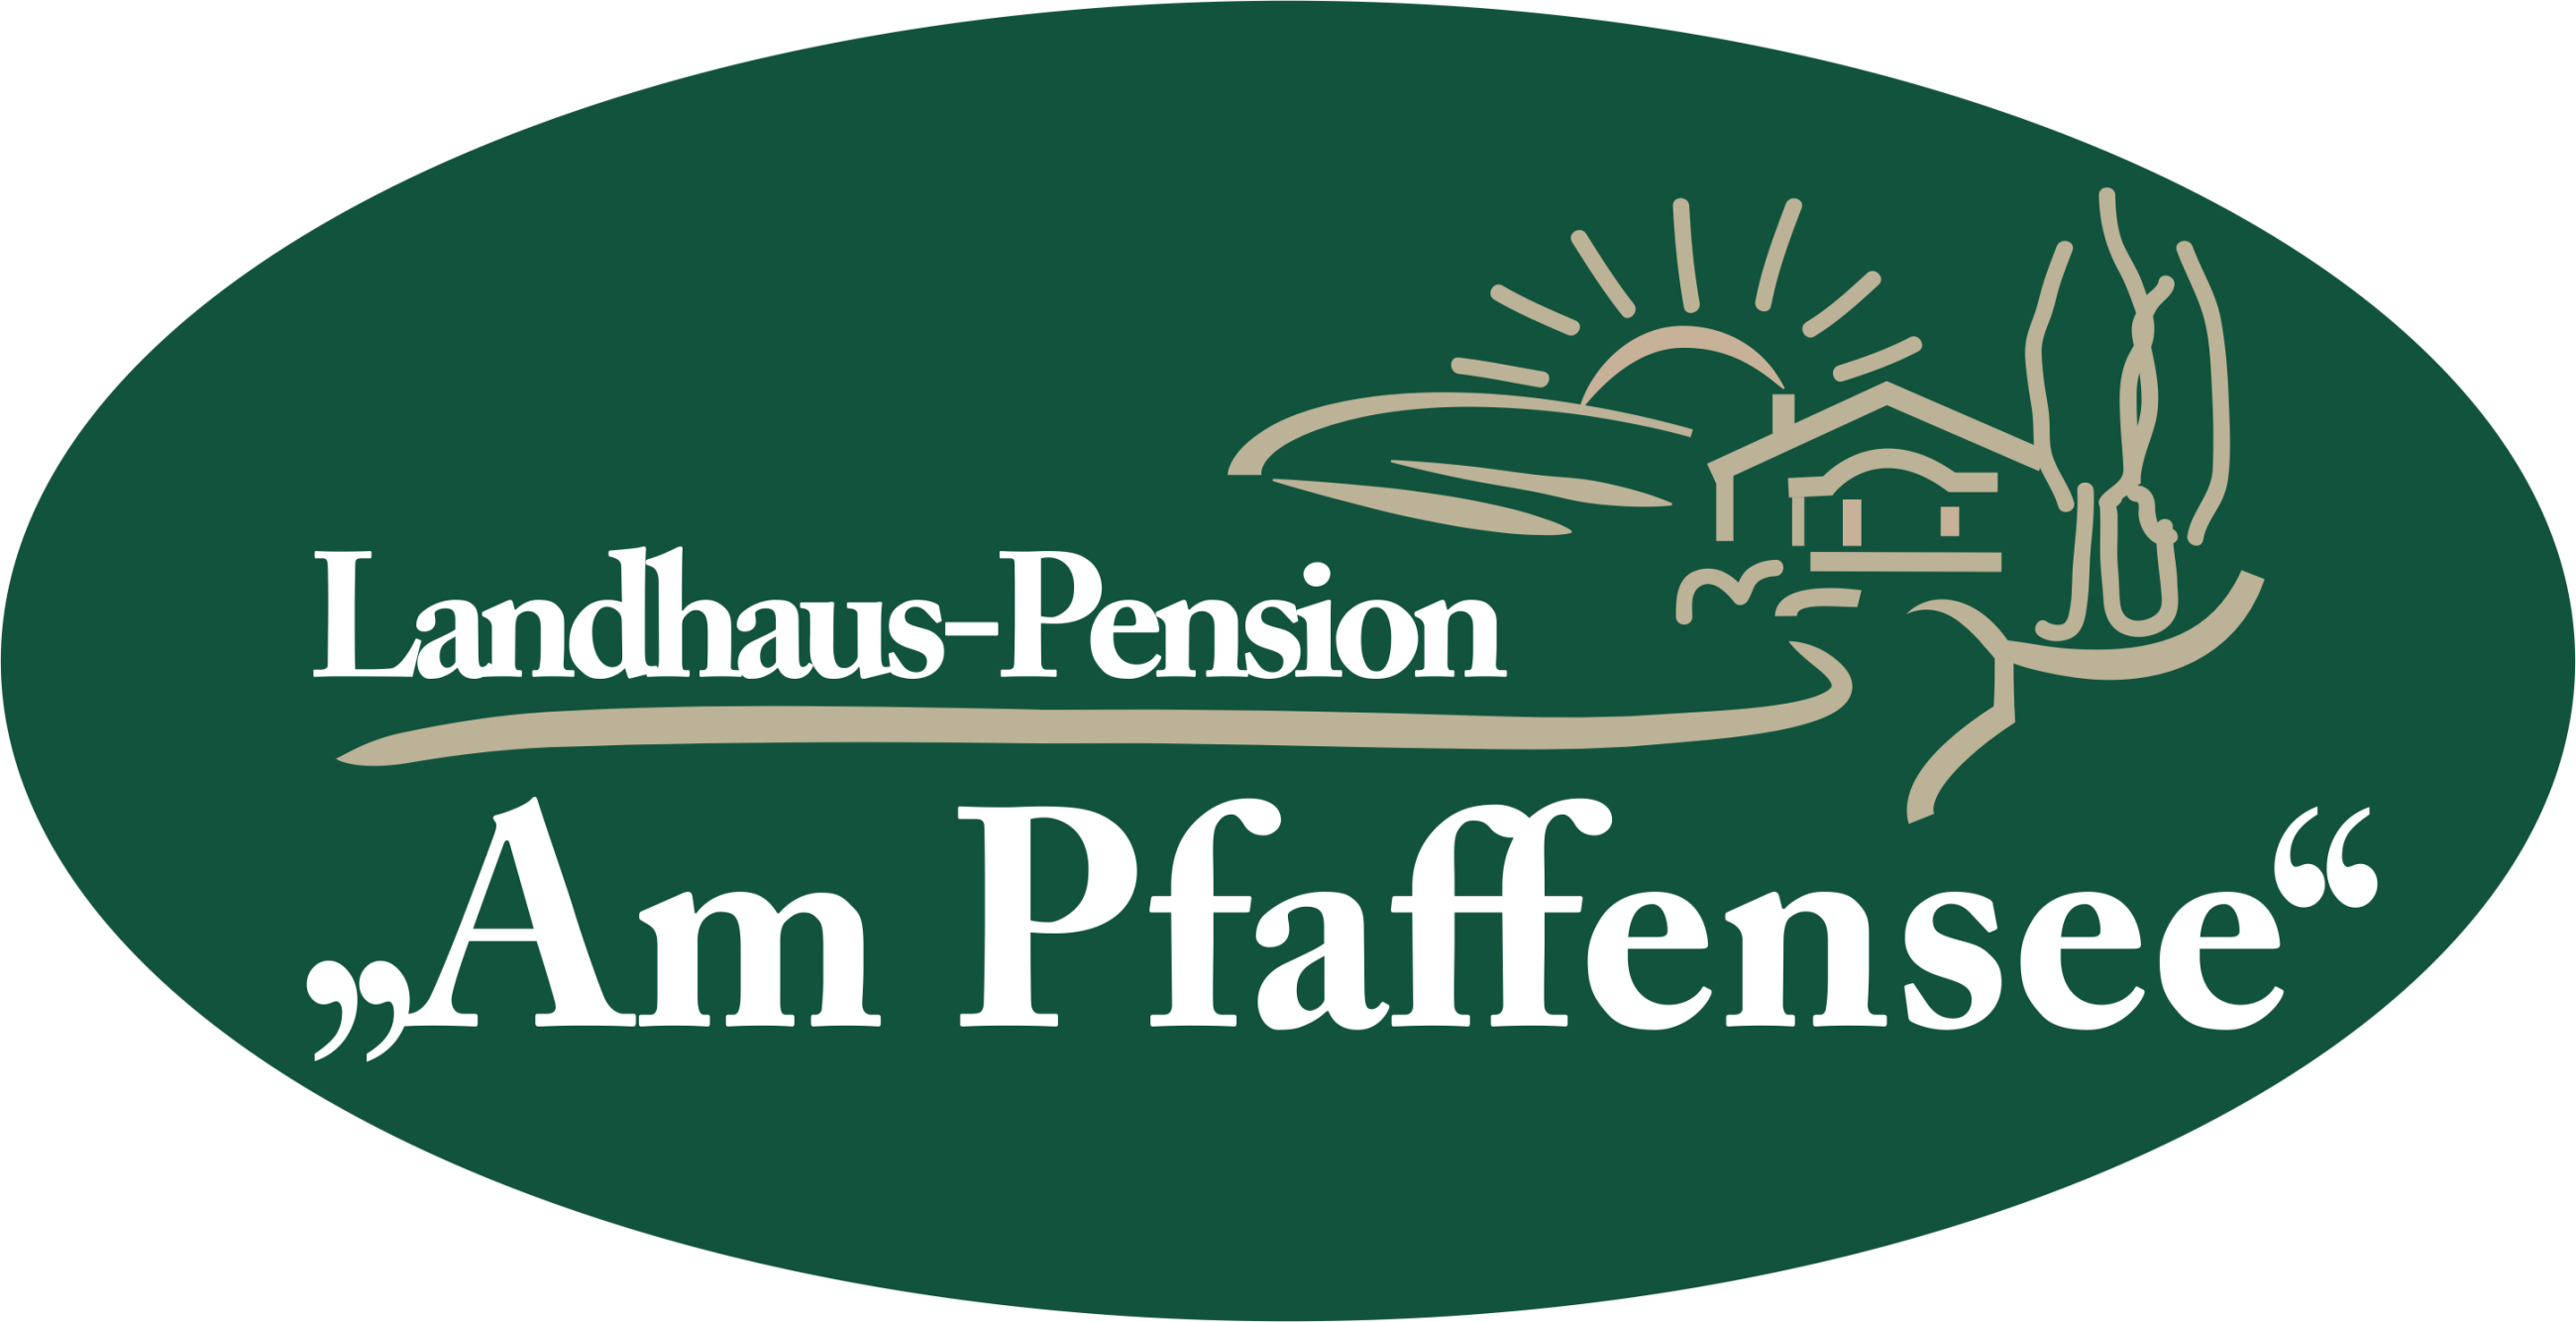 Landhaus-Pension